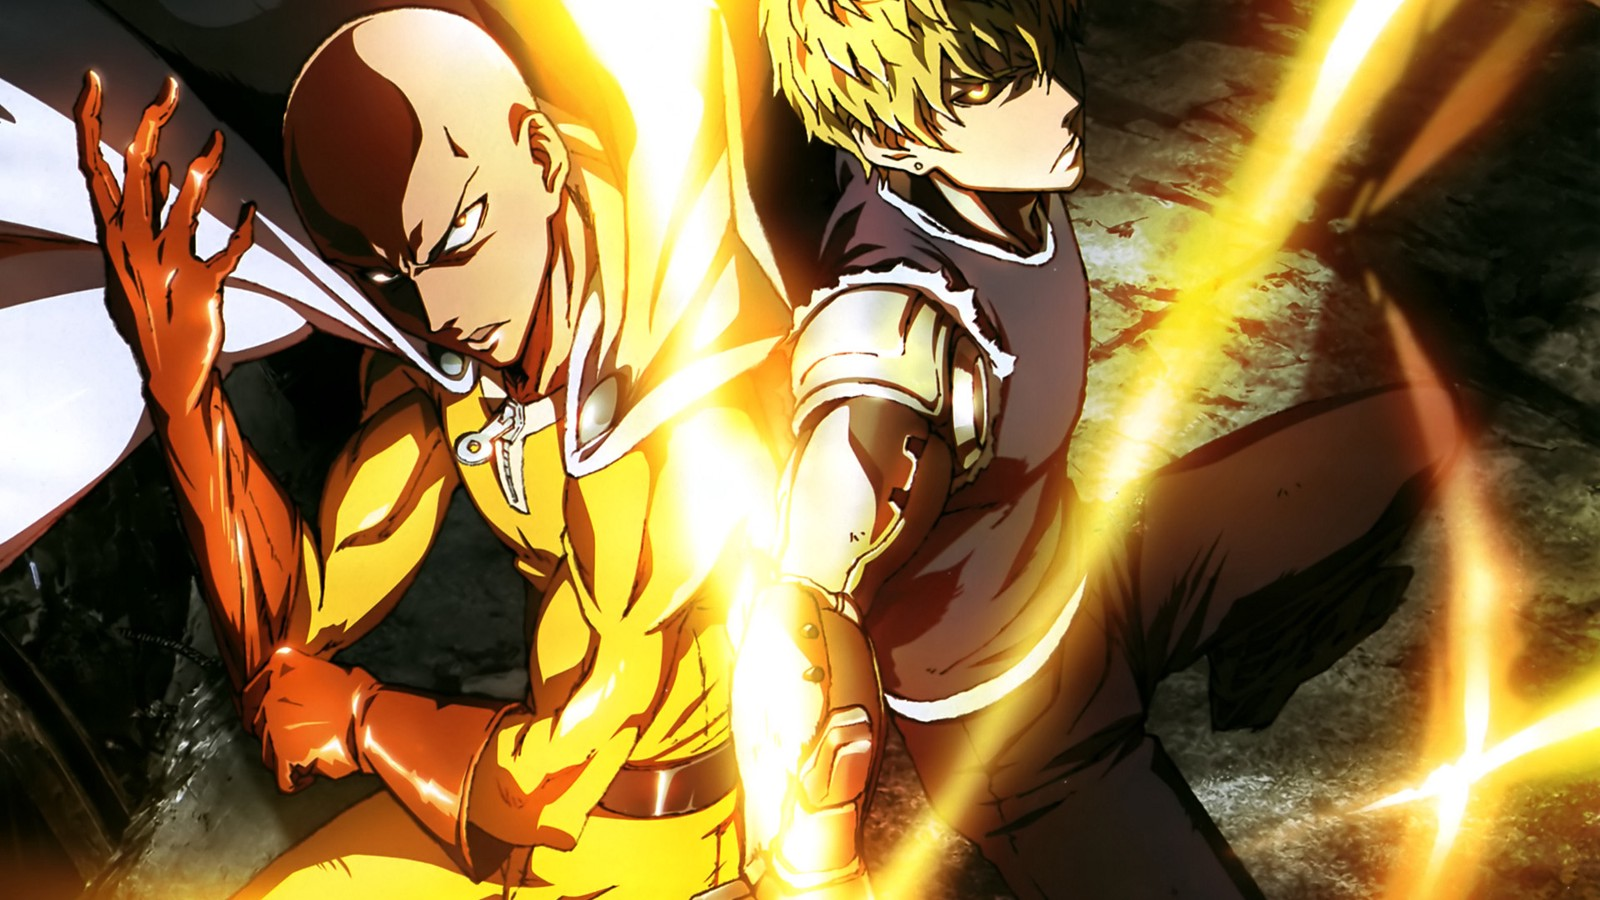 One punch man s2e05 saison 2 épisode 5 streaming vostfr tv tokyo